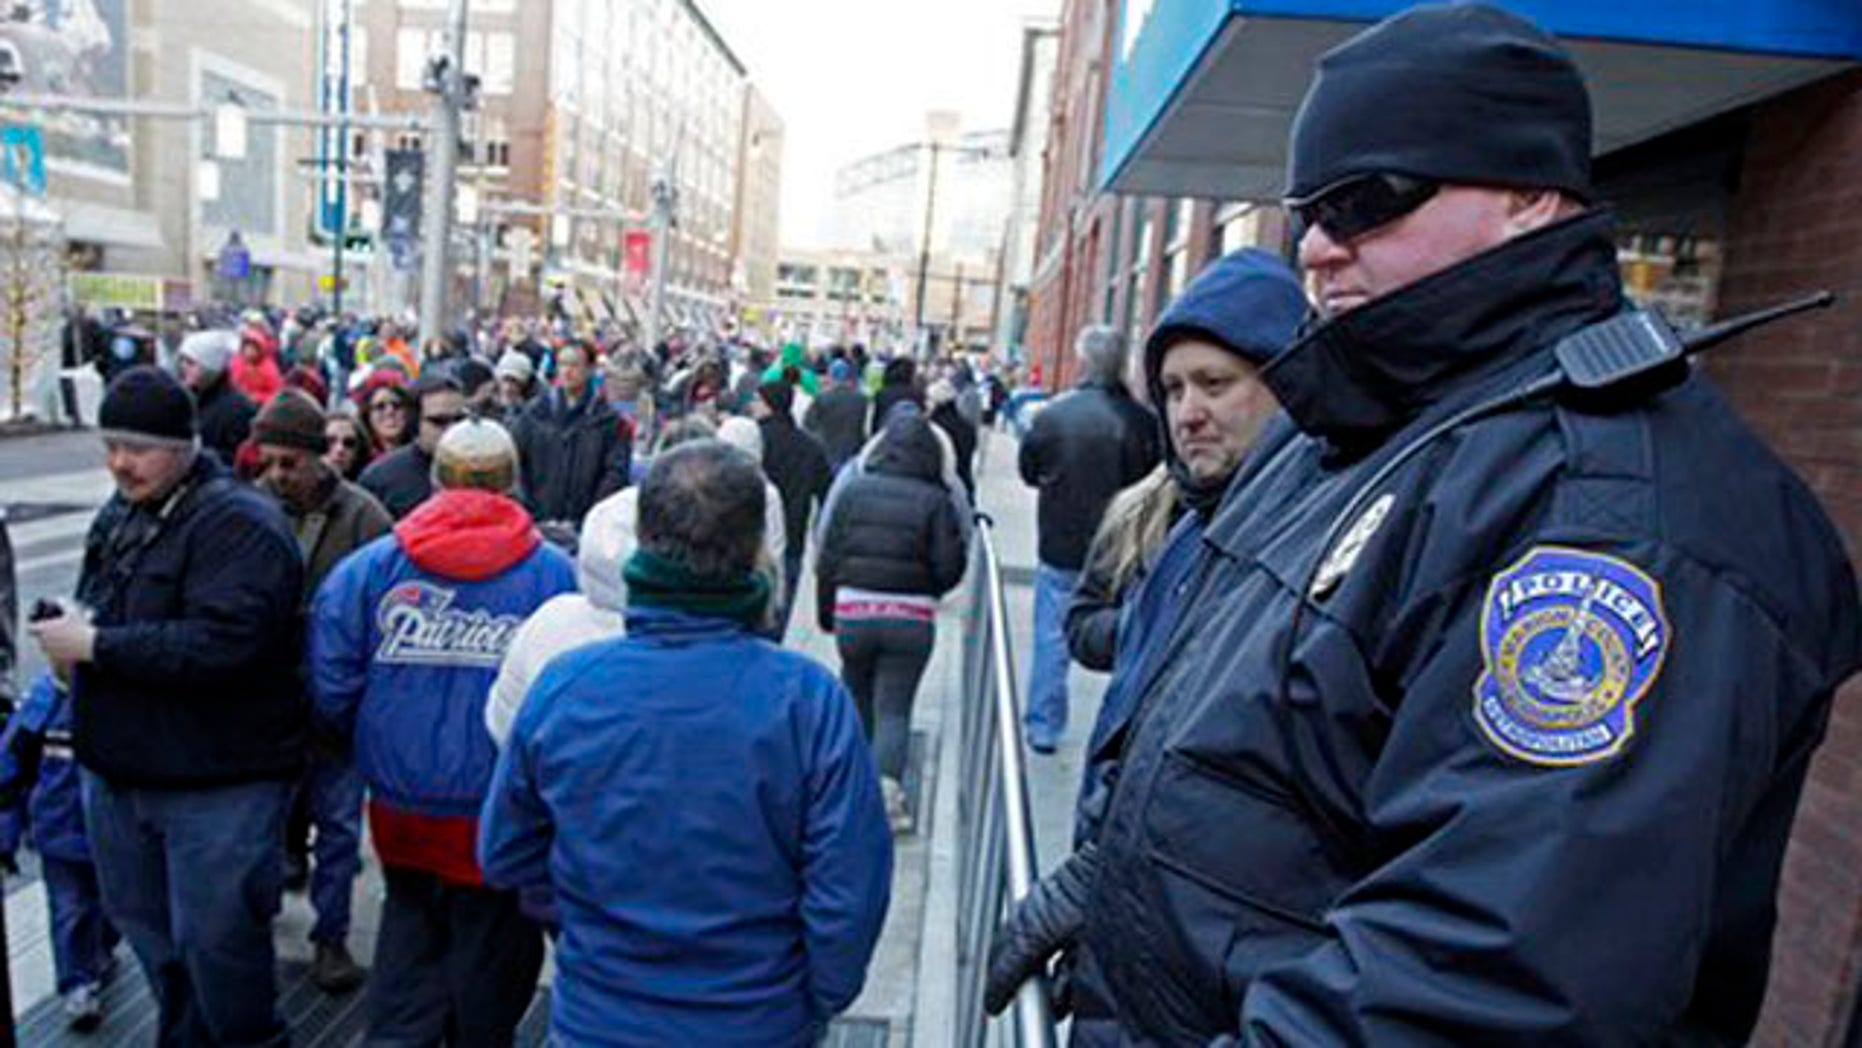 Jan. 29, 2012: Officer David Bryant, right, of the Indianapolis Metropolitan Police, watches the crowd at the Super Bowl Village in Indianapolis.